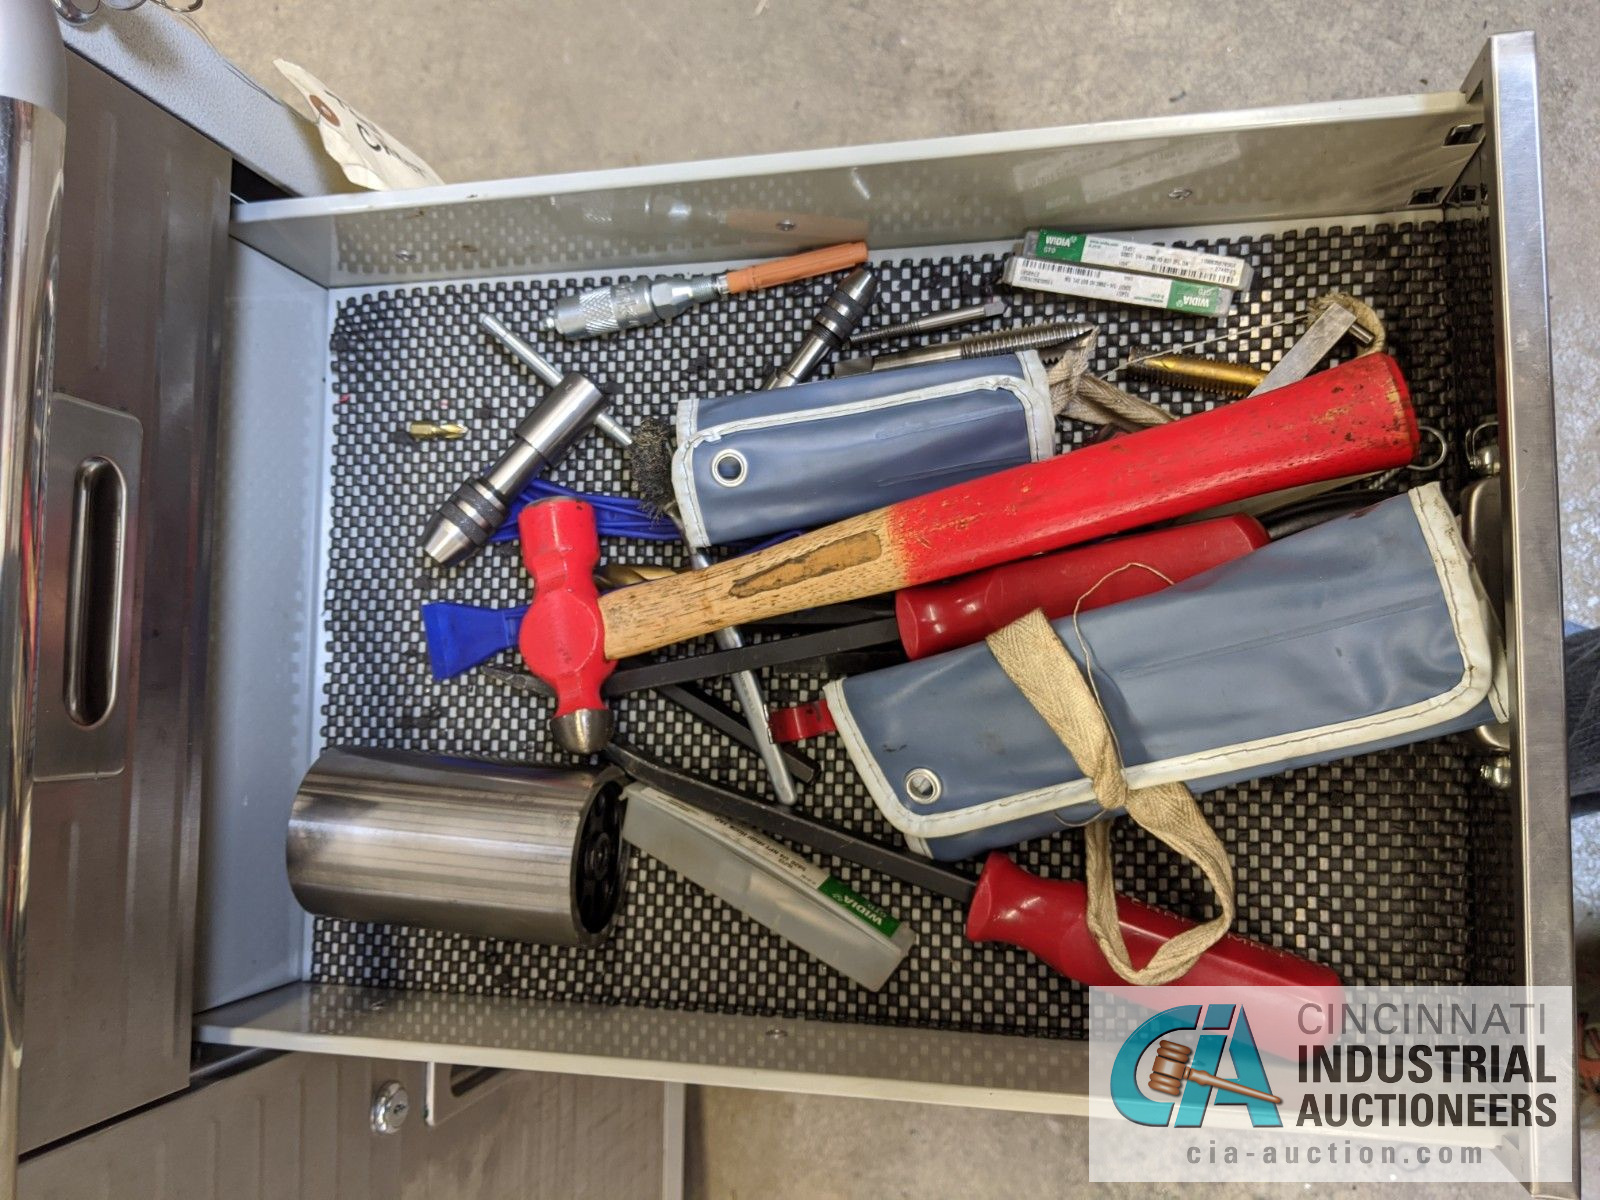 5-DRAWER PORTABLE BOX WITH CONTENTS - ASSORTED HAND TOOLS, MAPLE TOP - Image 4 of 7